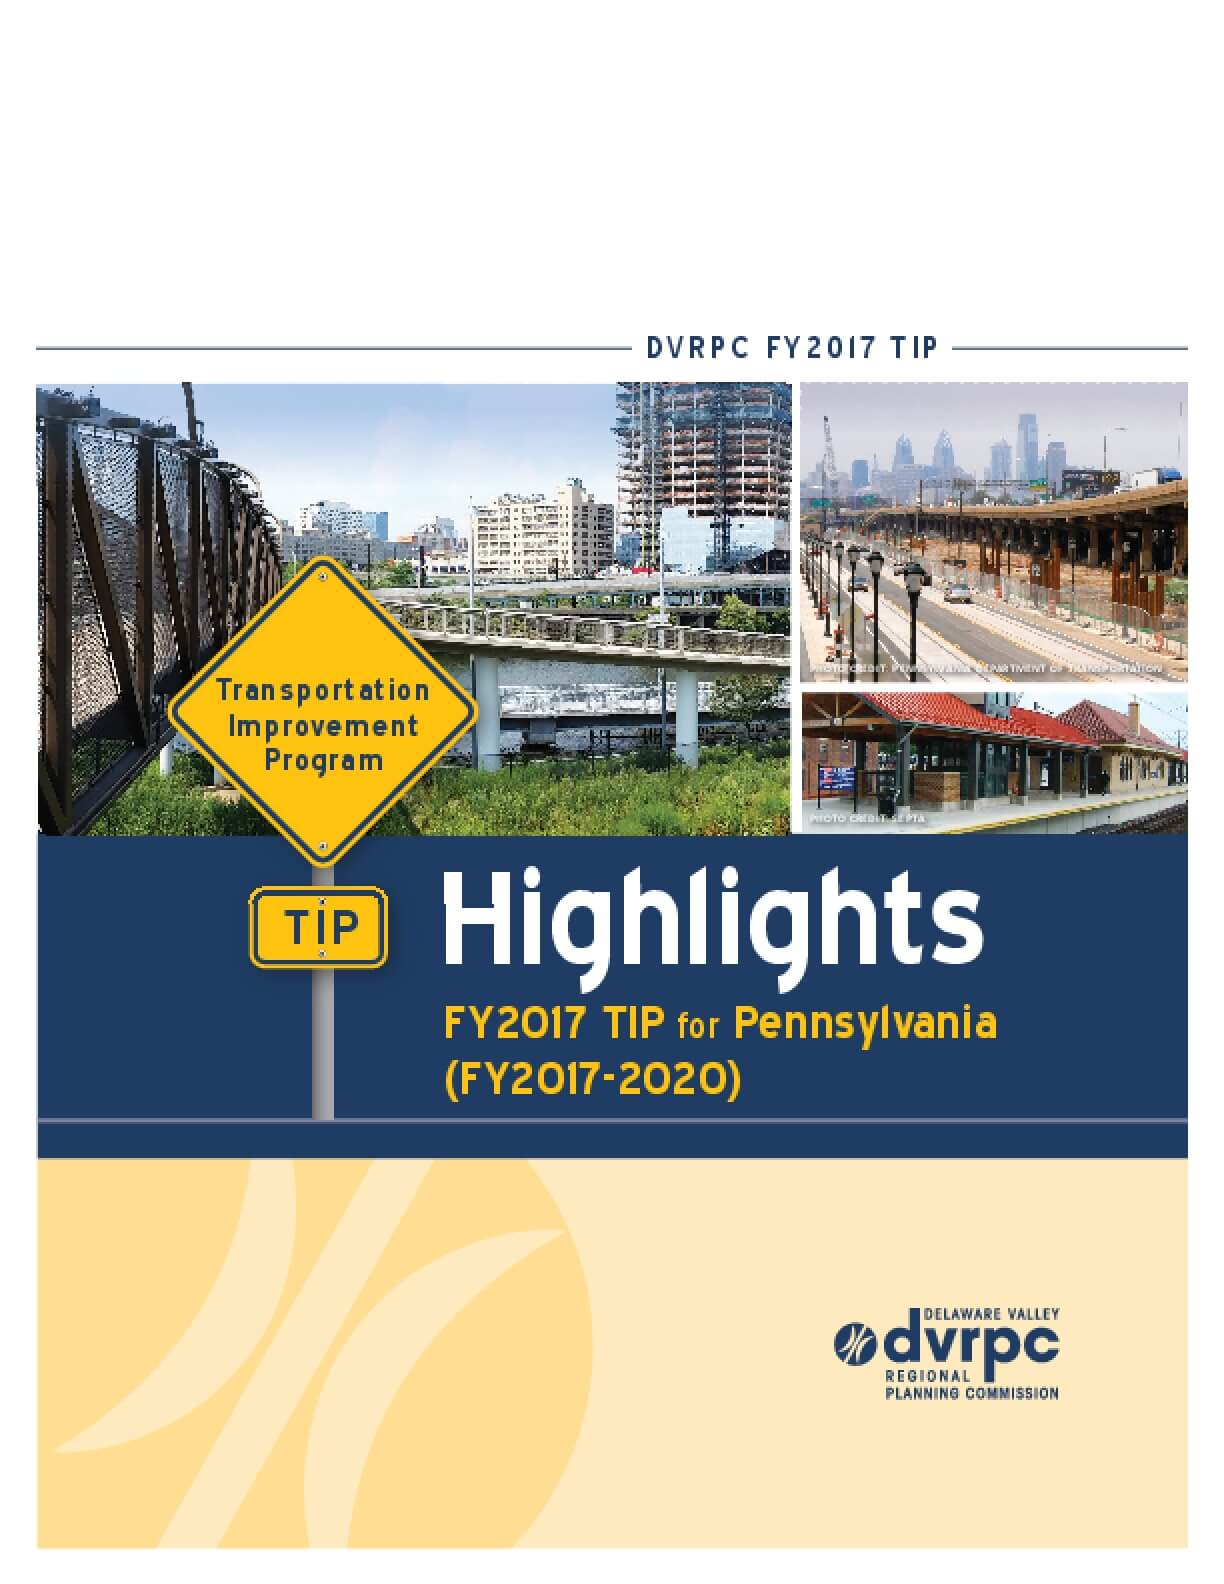 Highlights of the DVRPC FY2017 Transportation Improvement Program (TIP) for Pennsylvania (FY2017-2020)